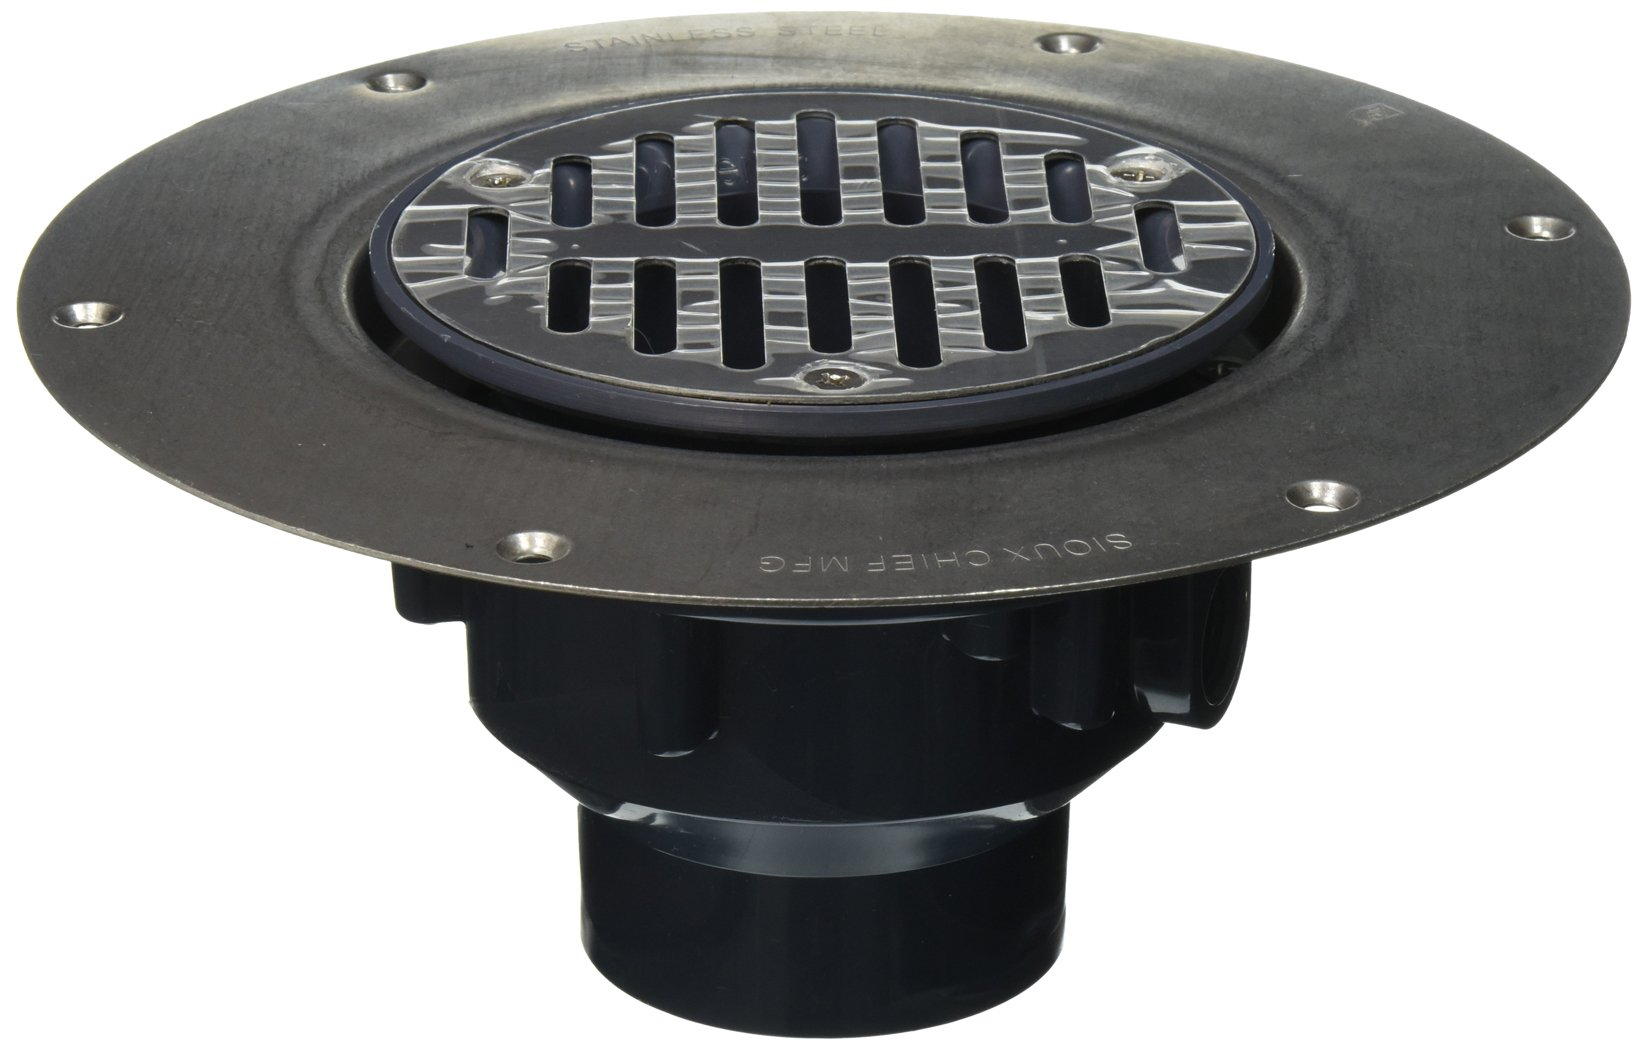 Soux Chief 822-2PS Halo Drain Adjustable Floor Drain Schlage 40 Hub Connection with Deck Flange